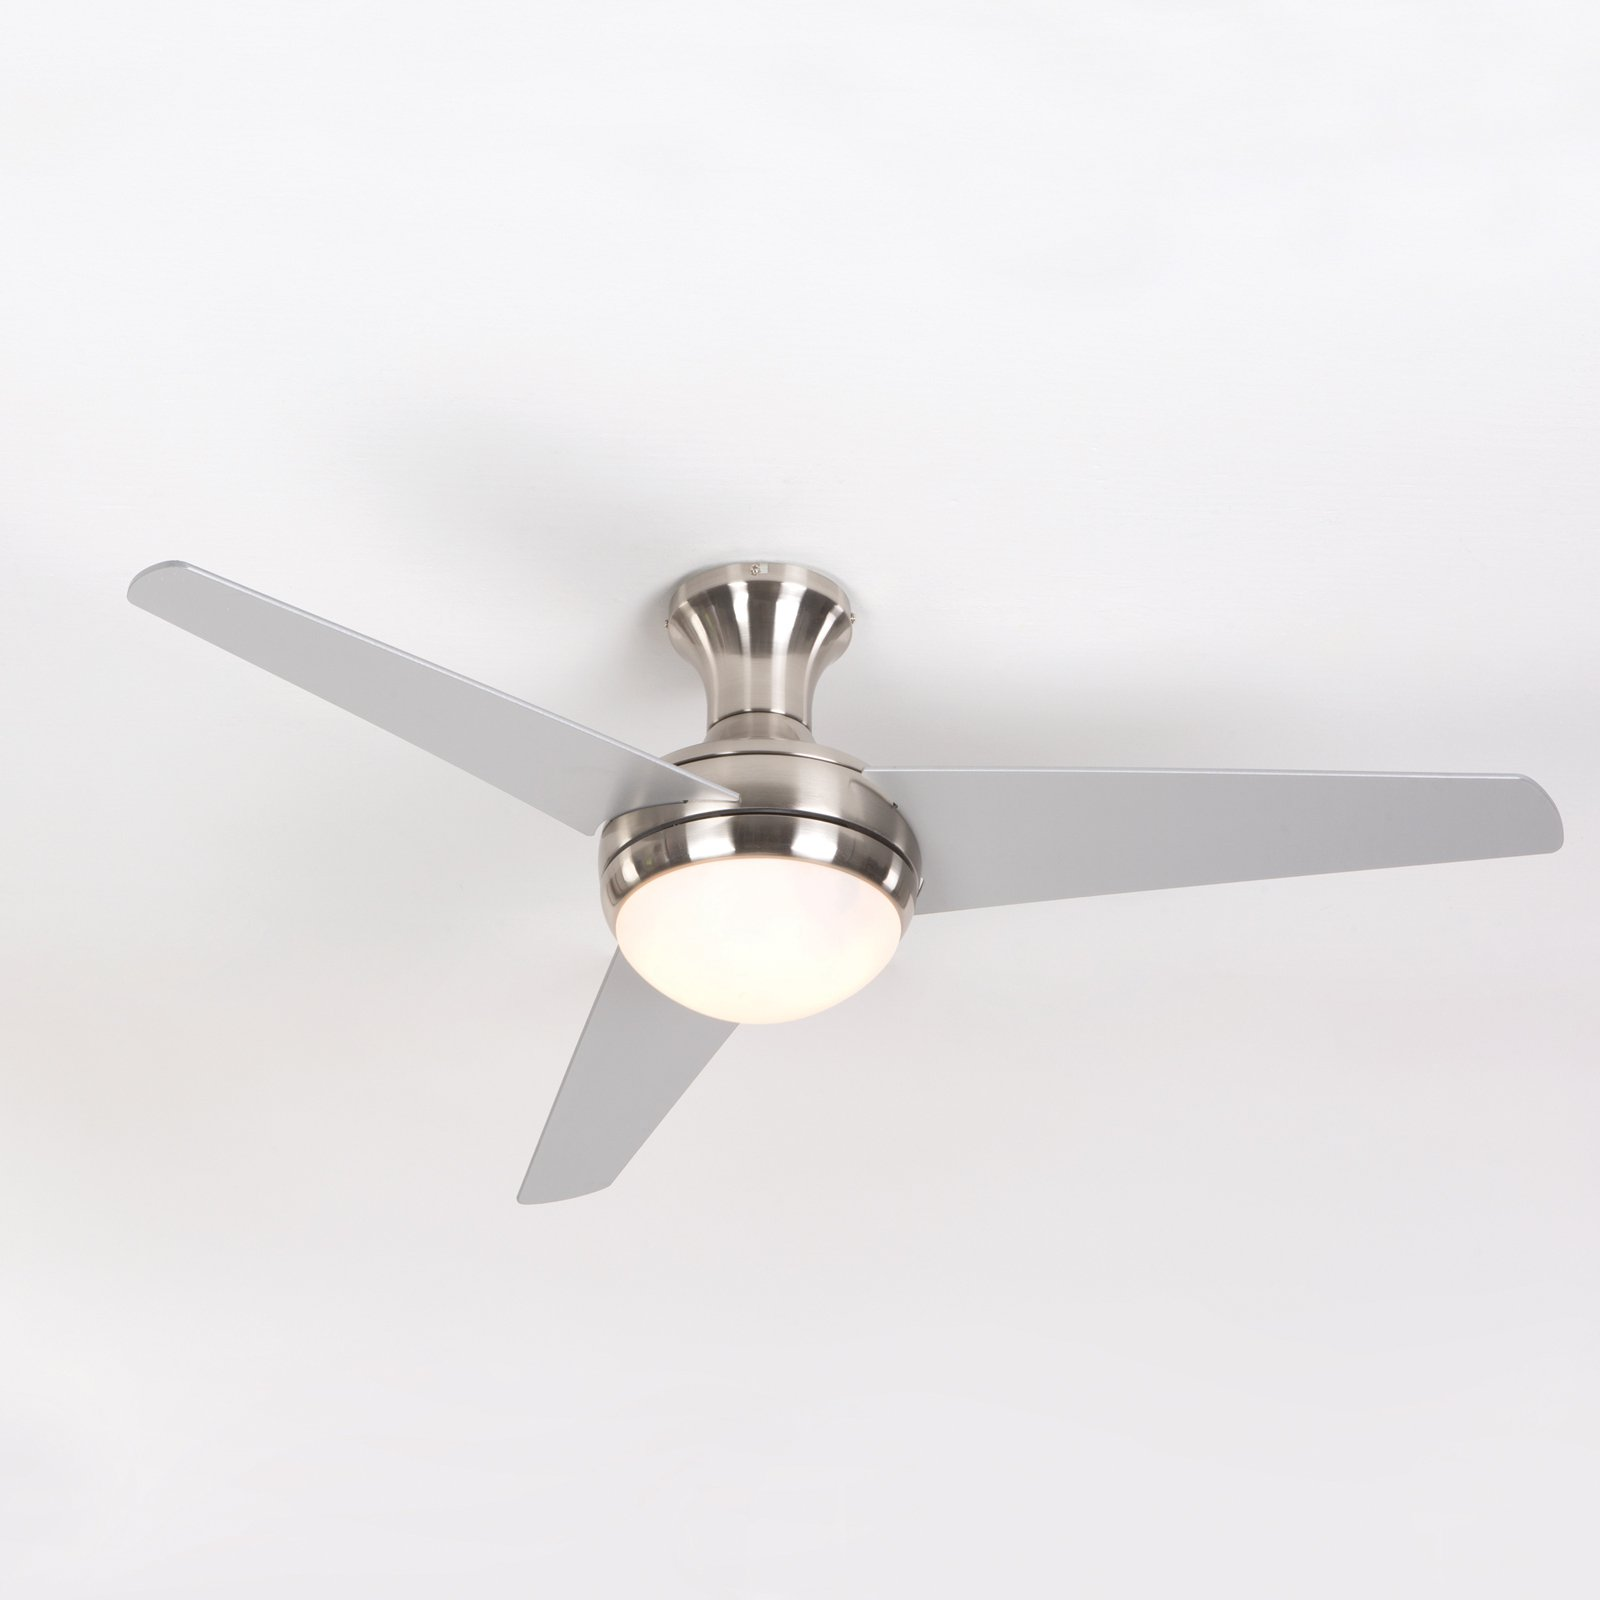 profile hunter fan large blades light industrial mount ceiling fans home switch remote price cheap black flush douglas big outdoor white and bedroom with small bay decor lights low